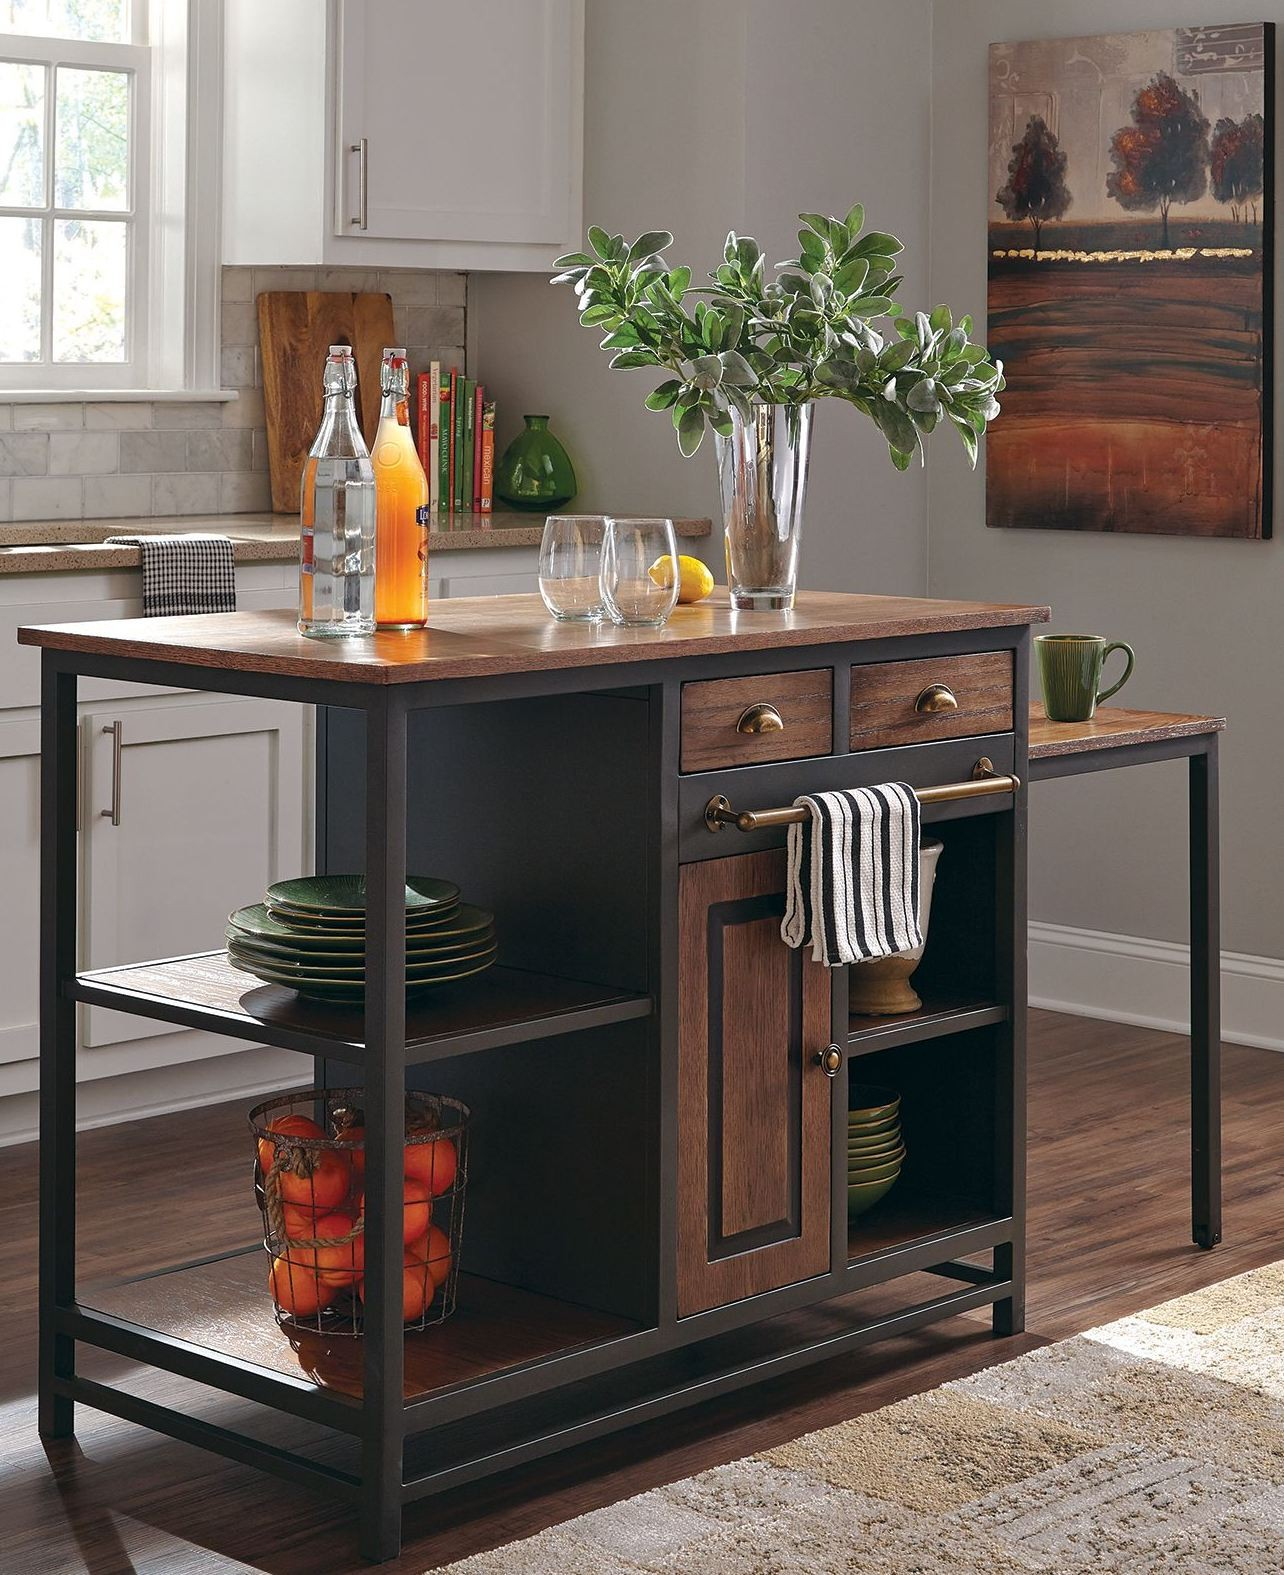 Wire-Brushed Wood Kitchen Island, 180220, Donny Osmond